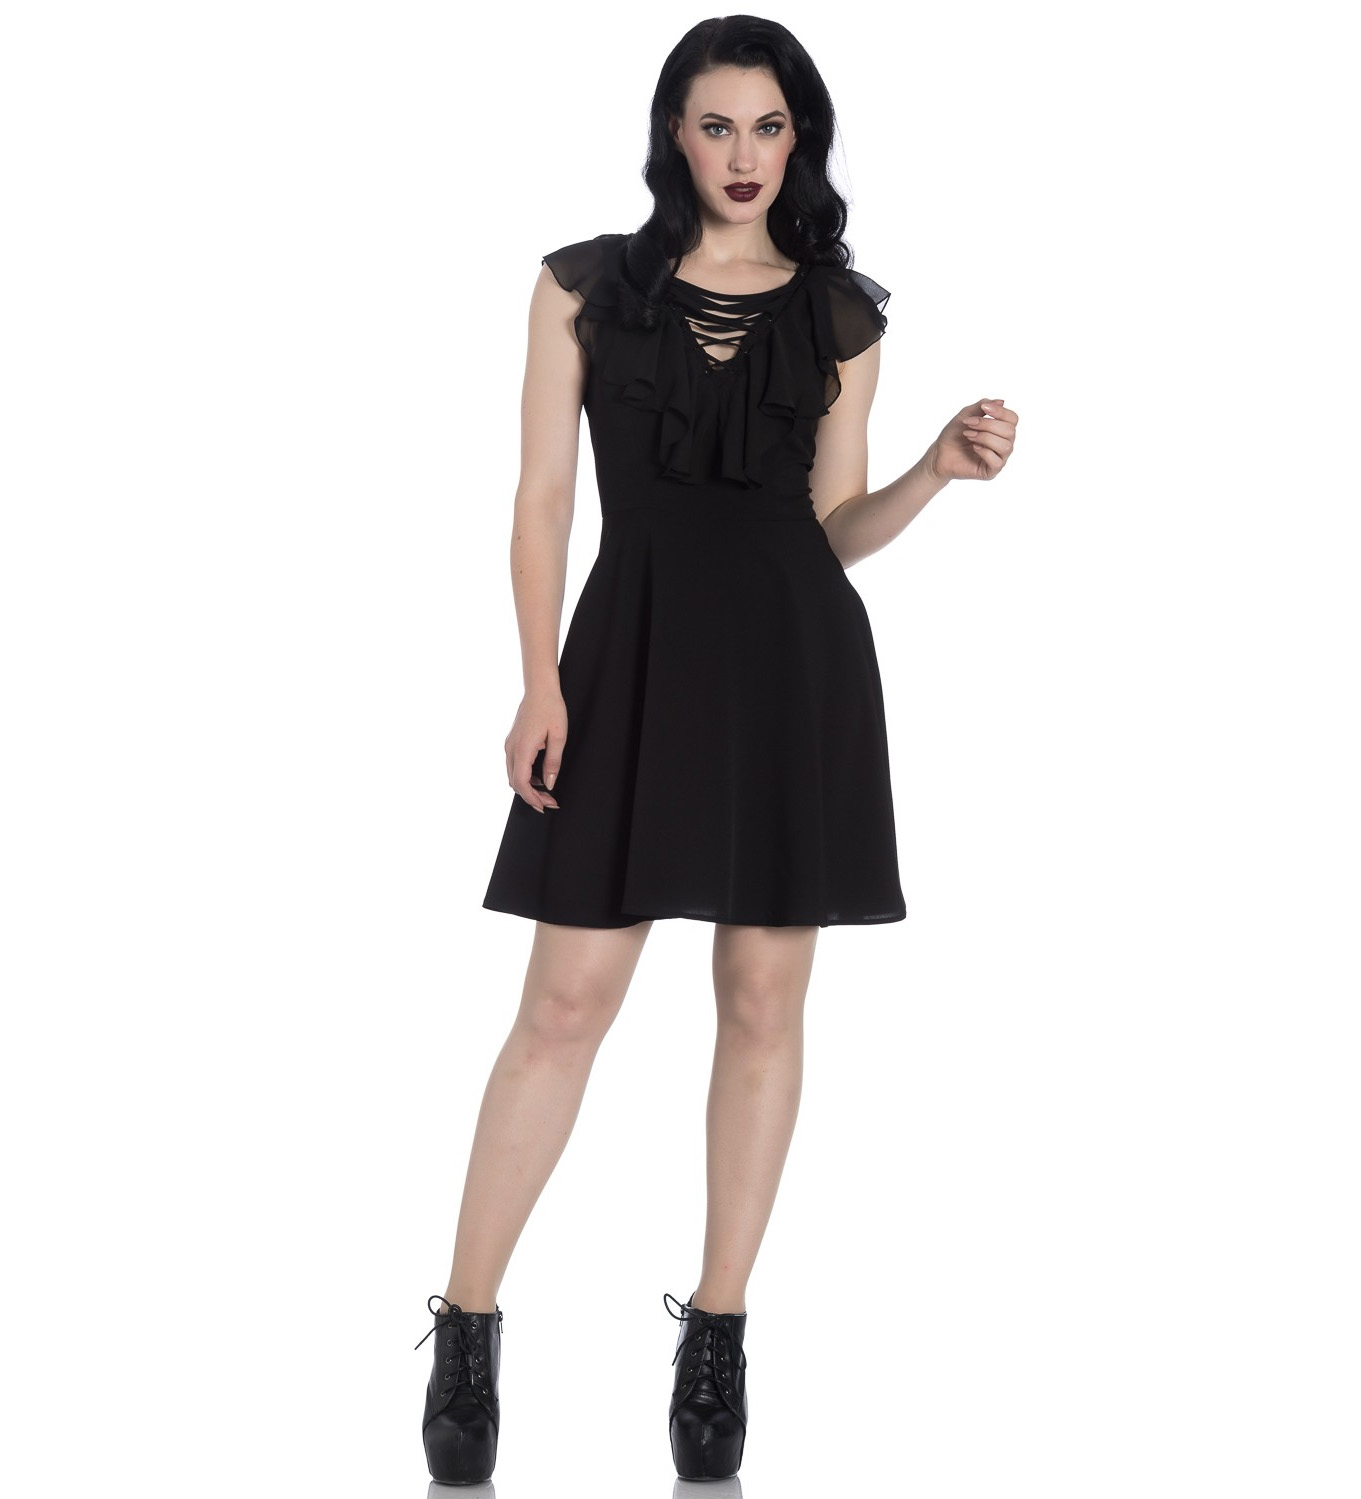 Hell-Bunny-Floaty-Lace-Up-Goth-Witch-Punk-Mini-Dress-ONYX-Black-All-Sizes thumbnail 21